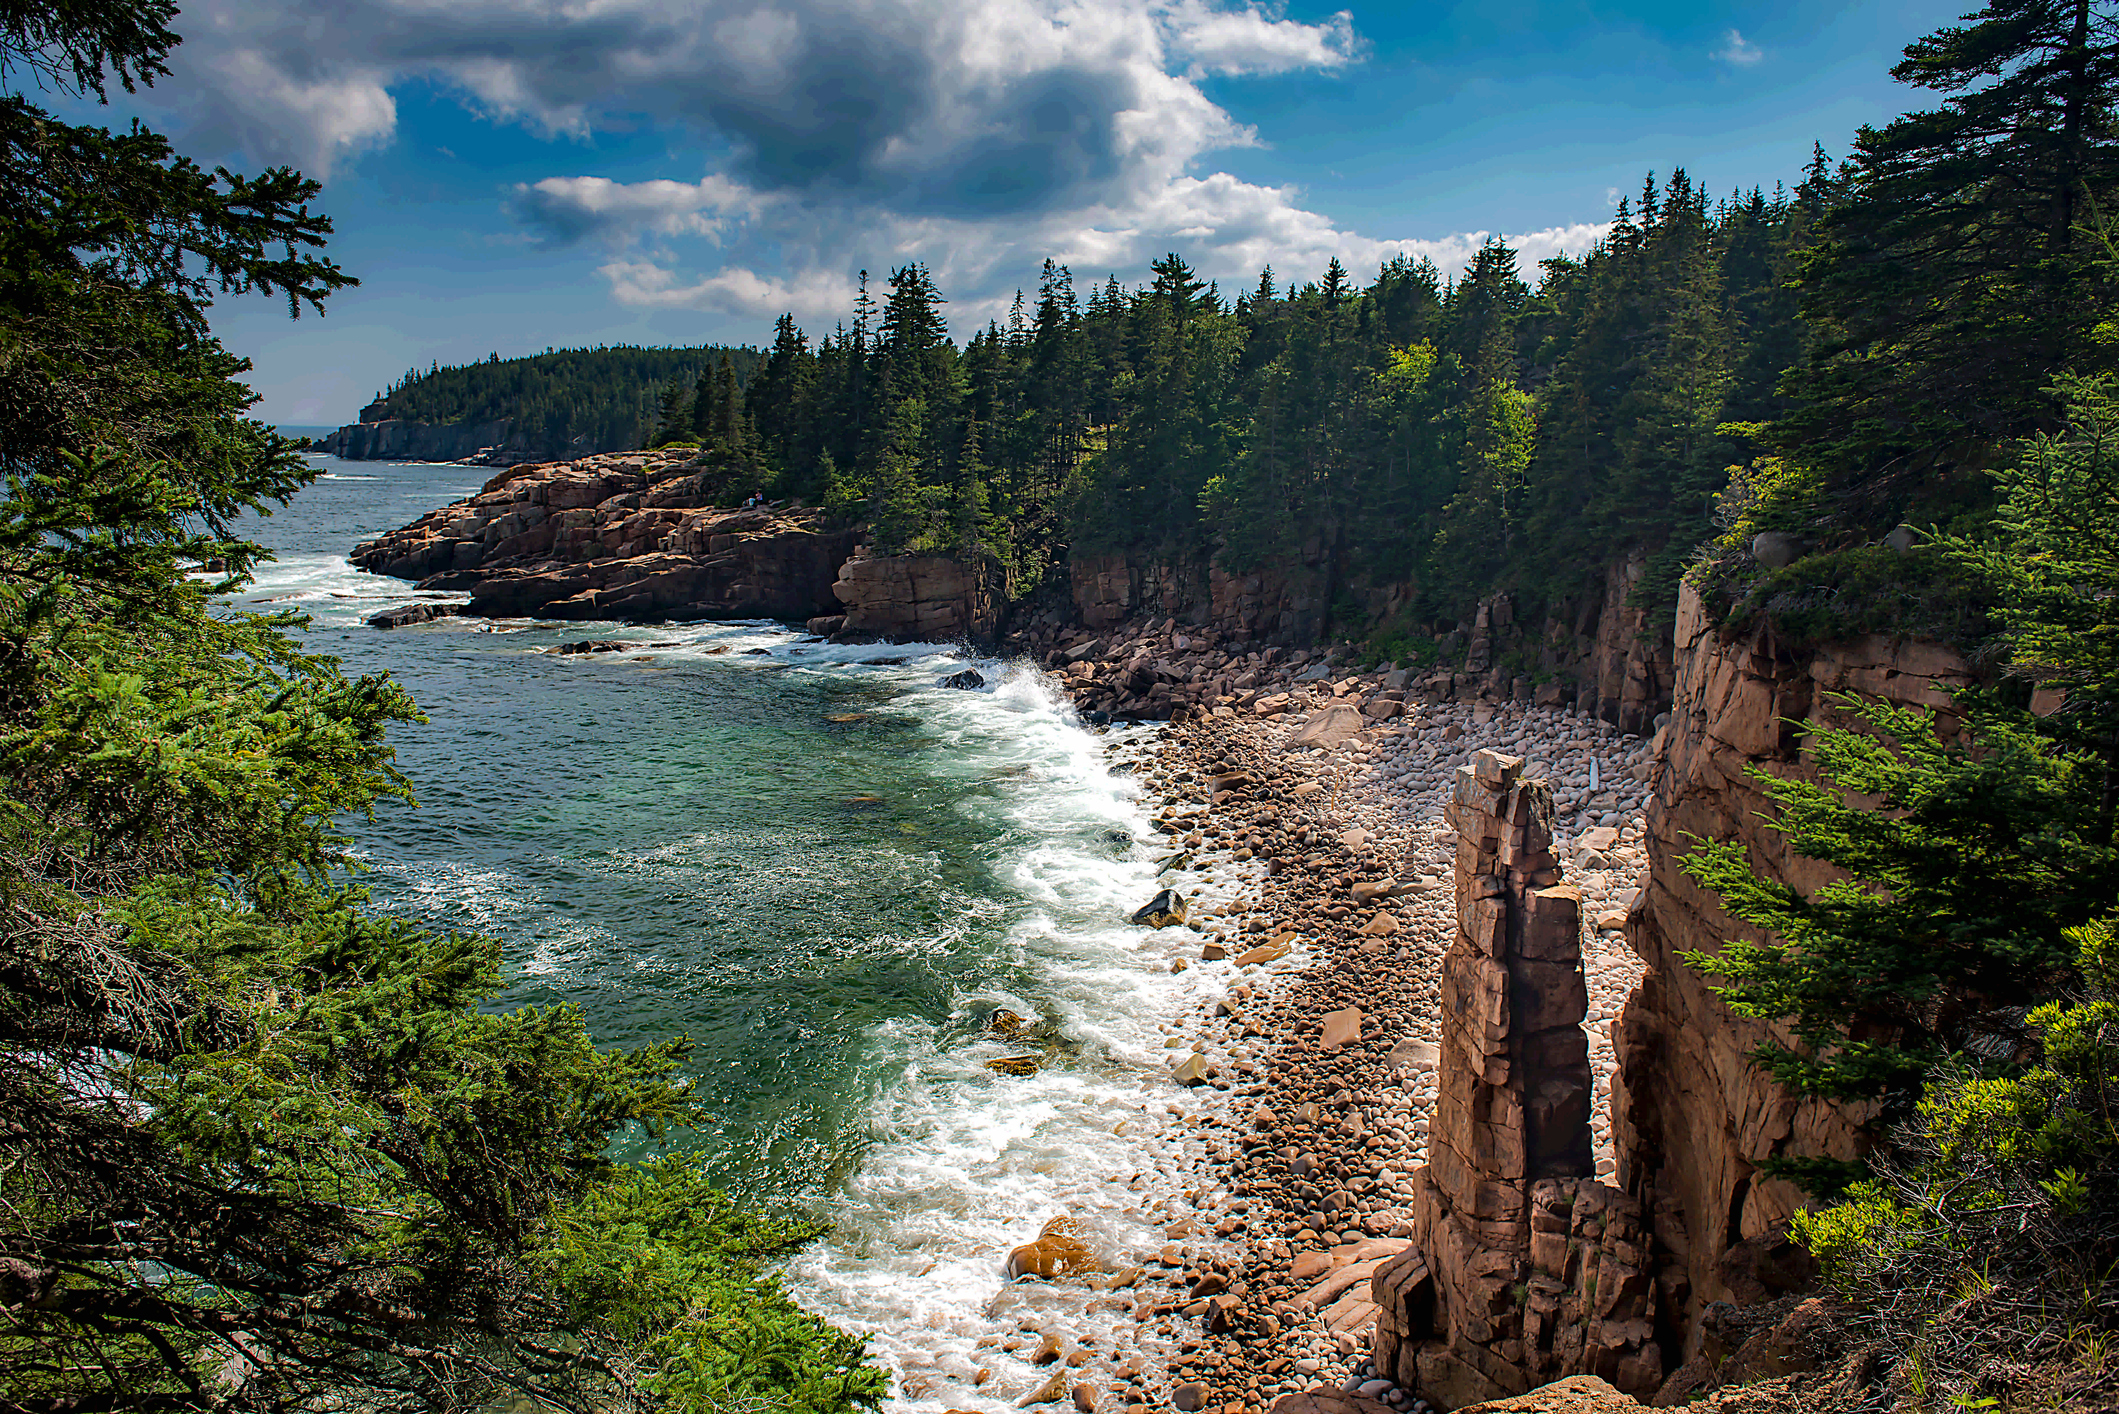 5. Acadia National Park (Maine)